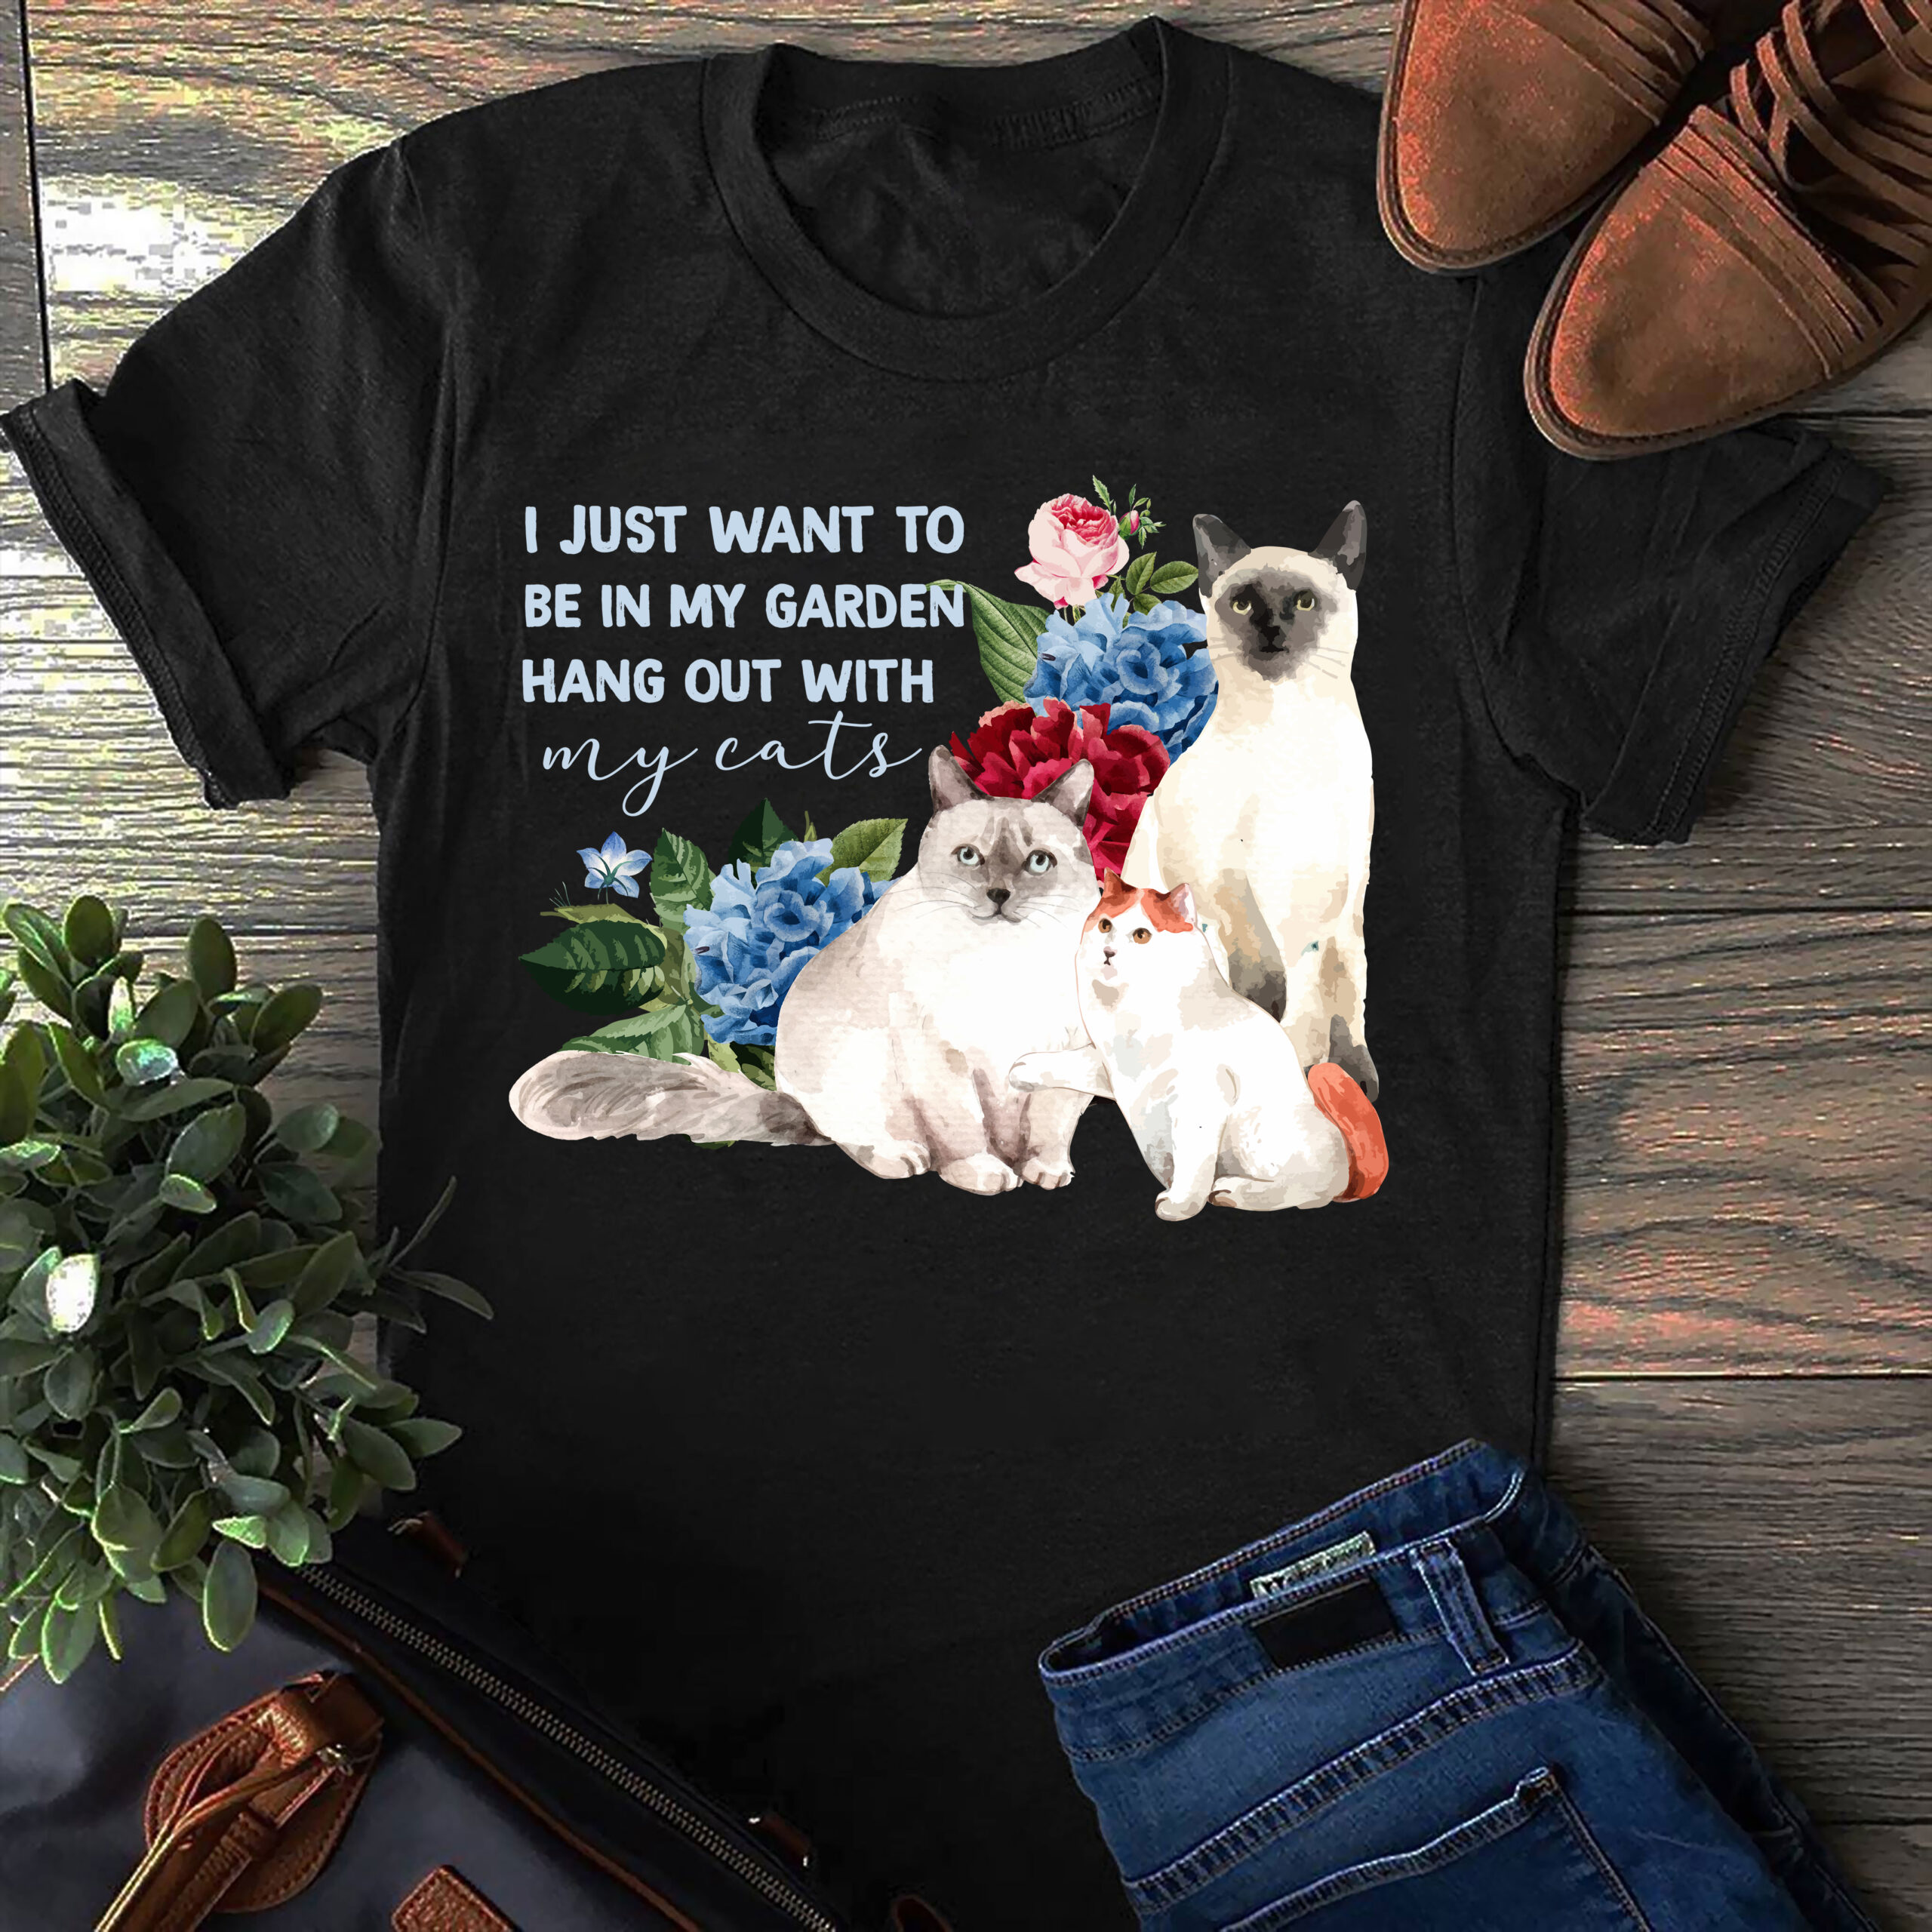 Garden Shirt Be In My Garden Hang Out With My Cats